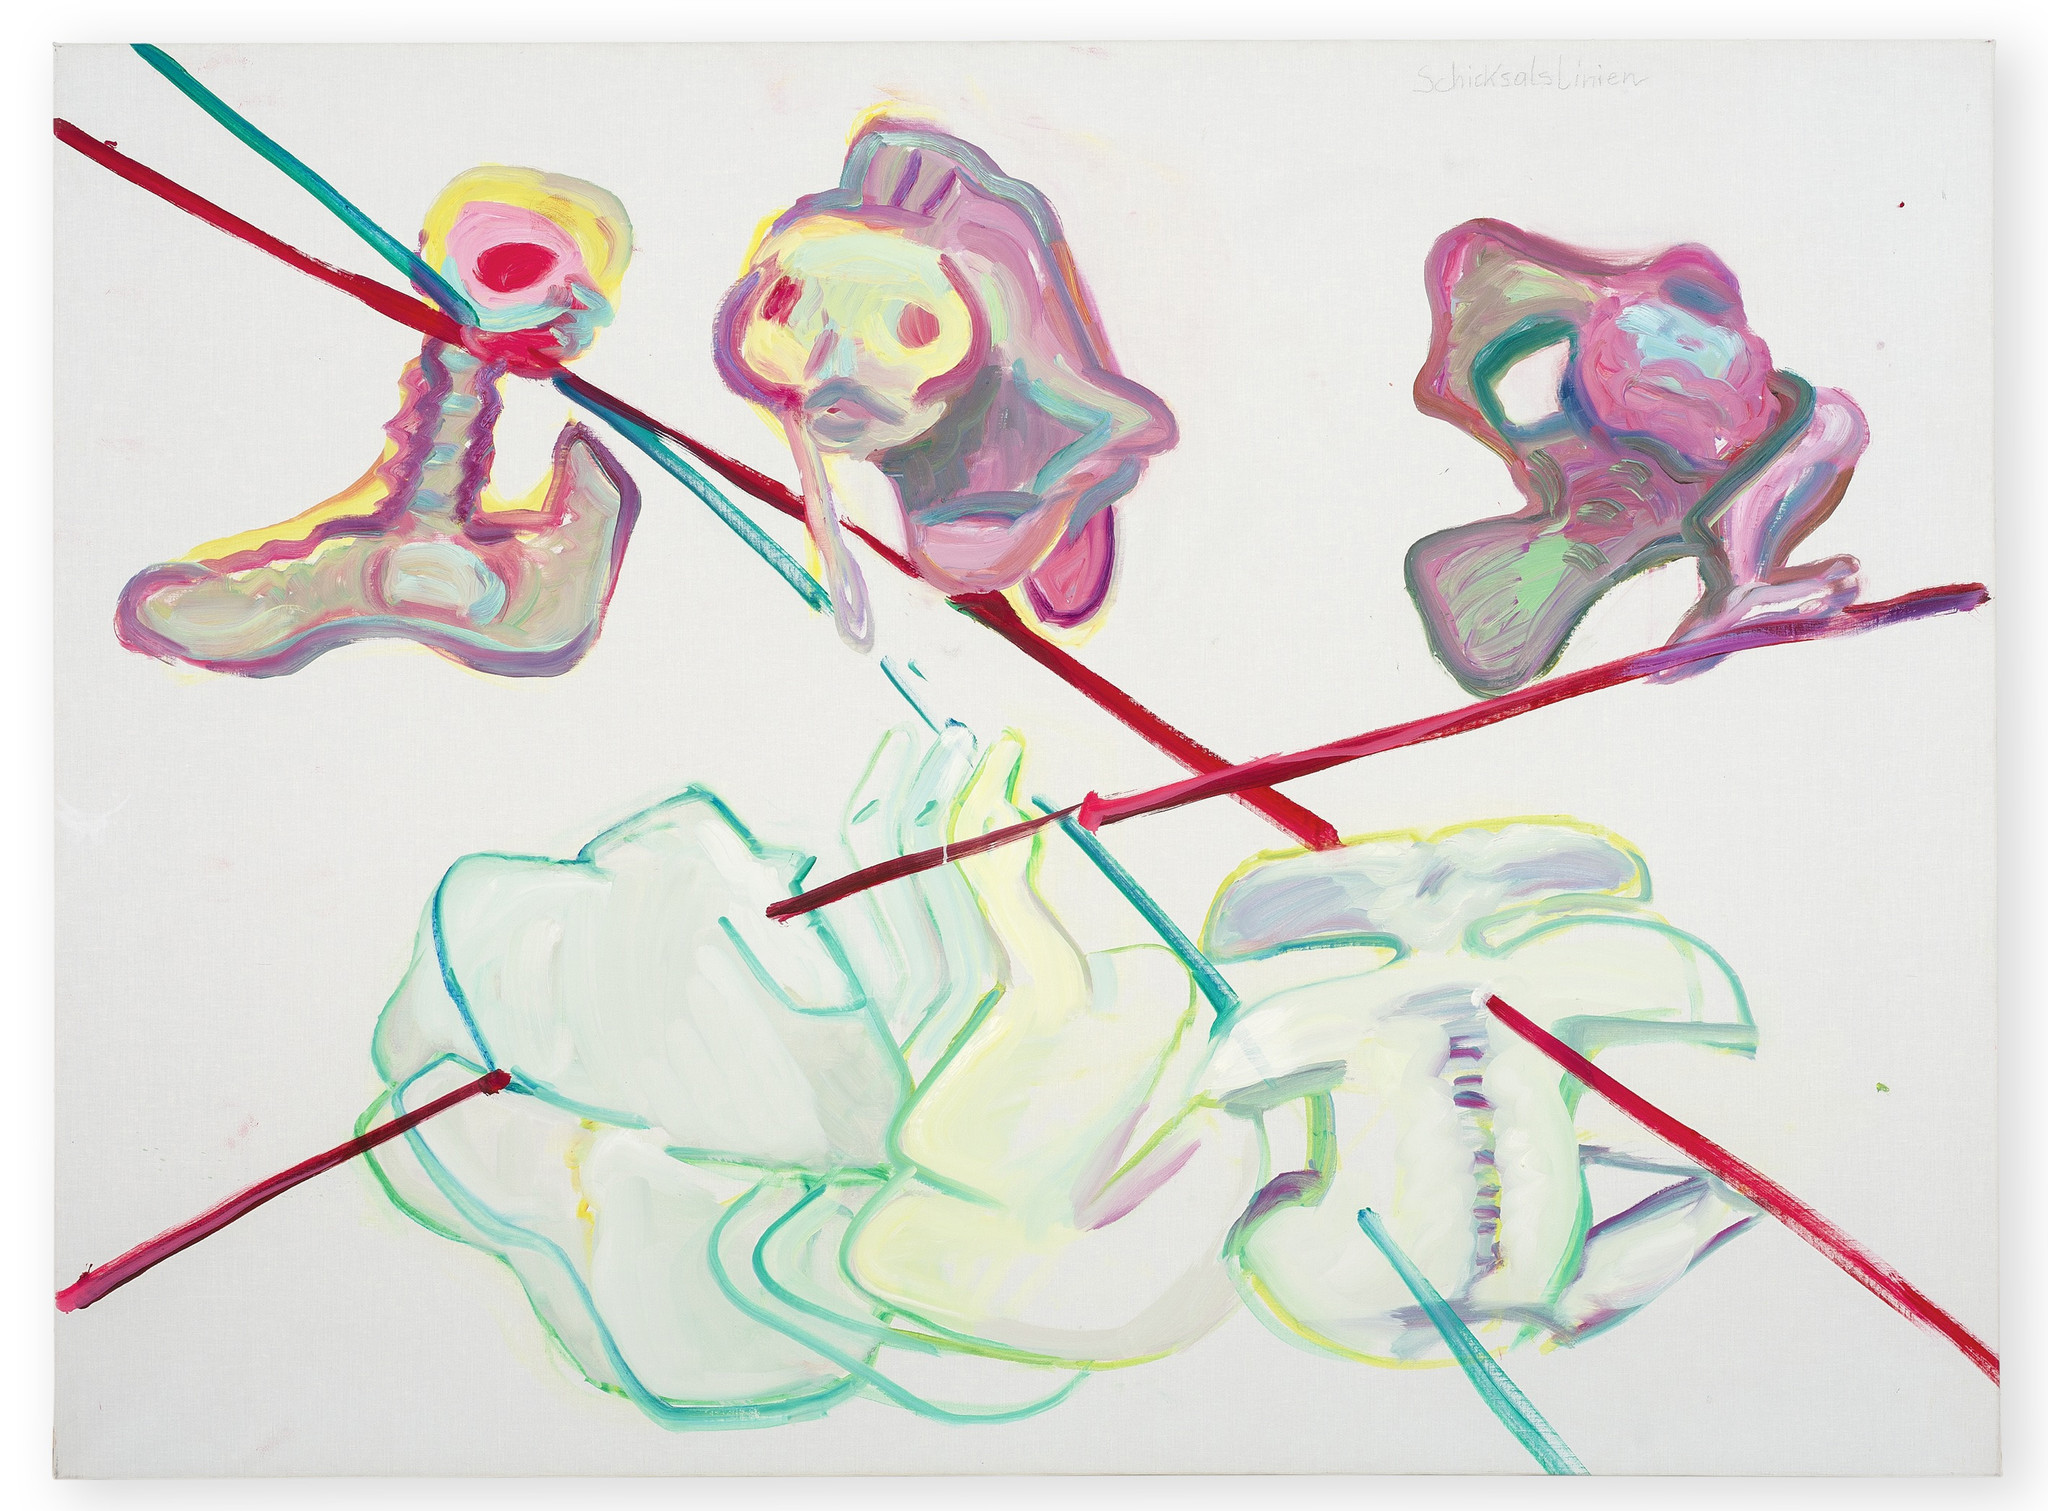 """Maria Lassnig's """"Lines of Fate/Re-lations VIII,"""" 1994, oil on canvas, 59 inches by 893/4 inches."""